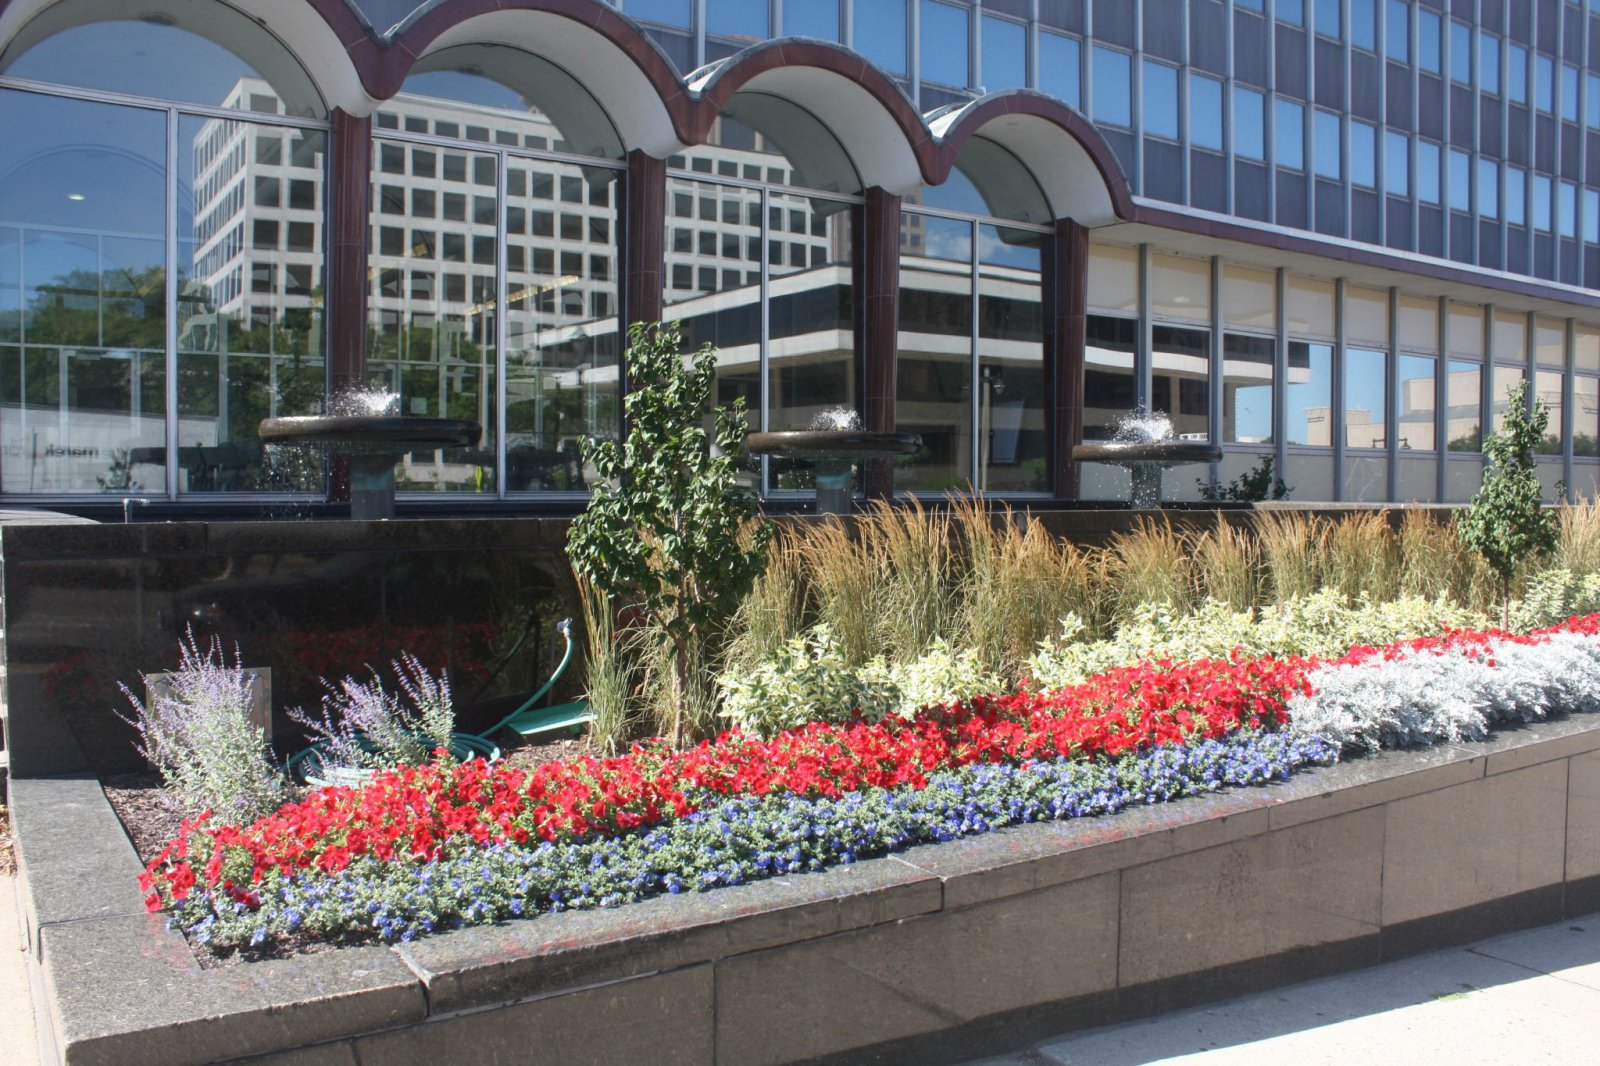 Landscaped median near Broadway